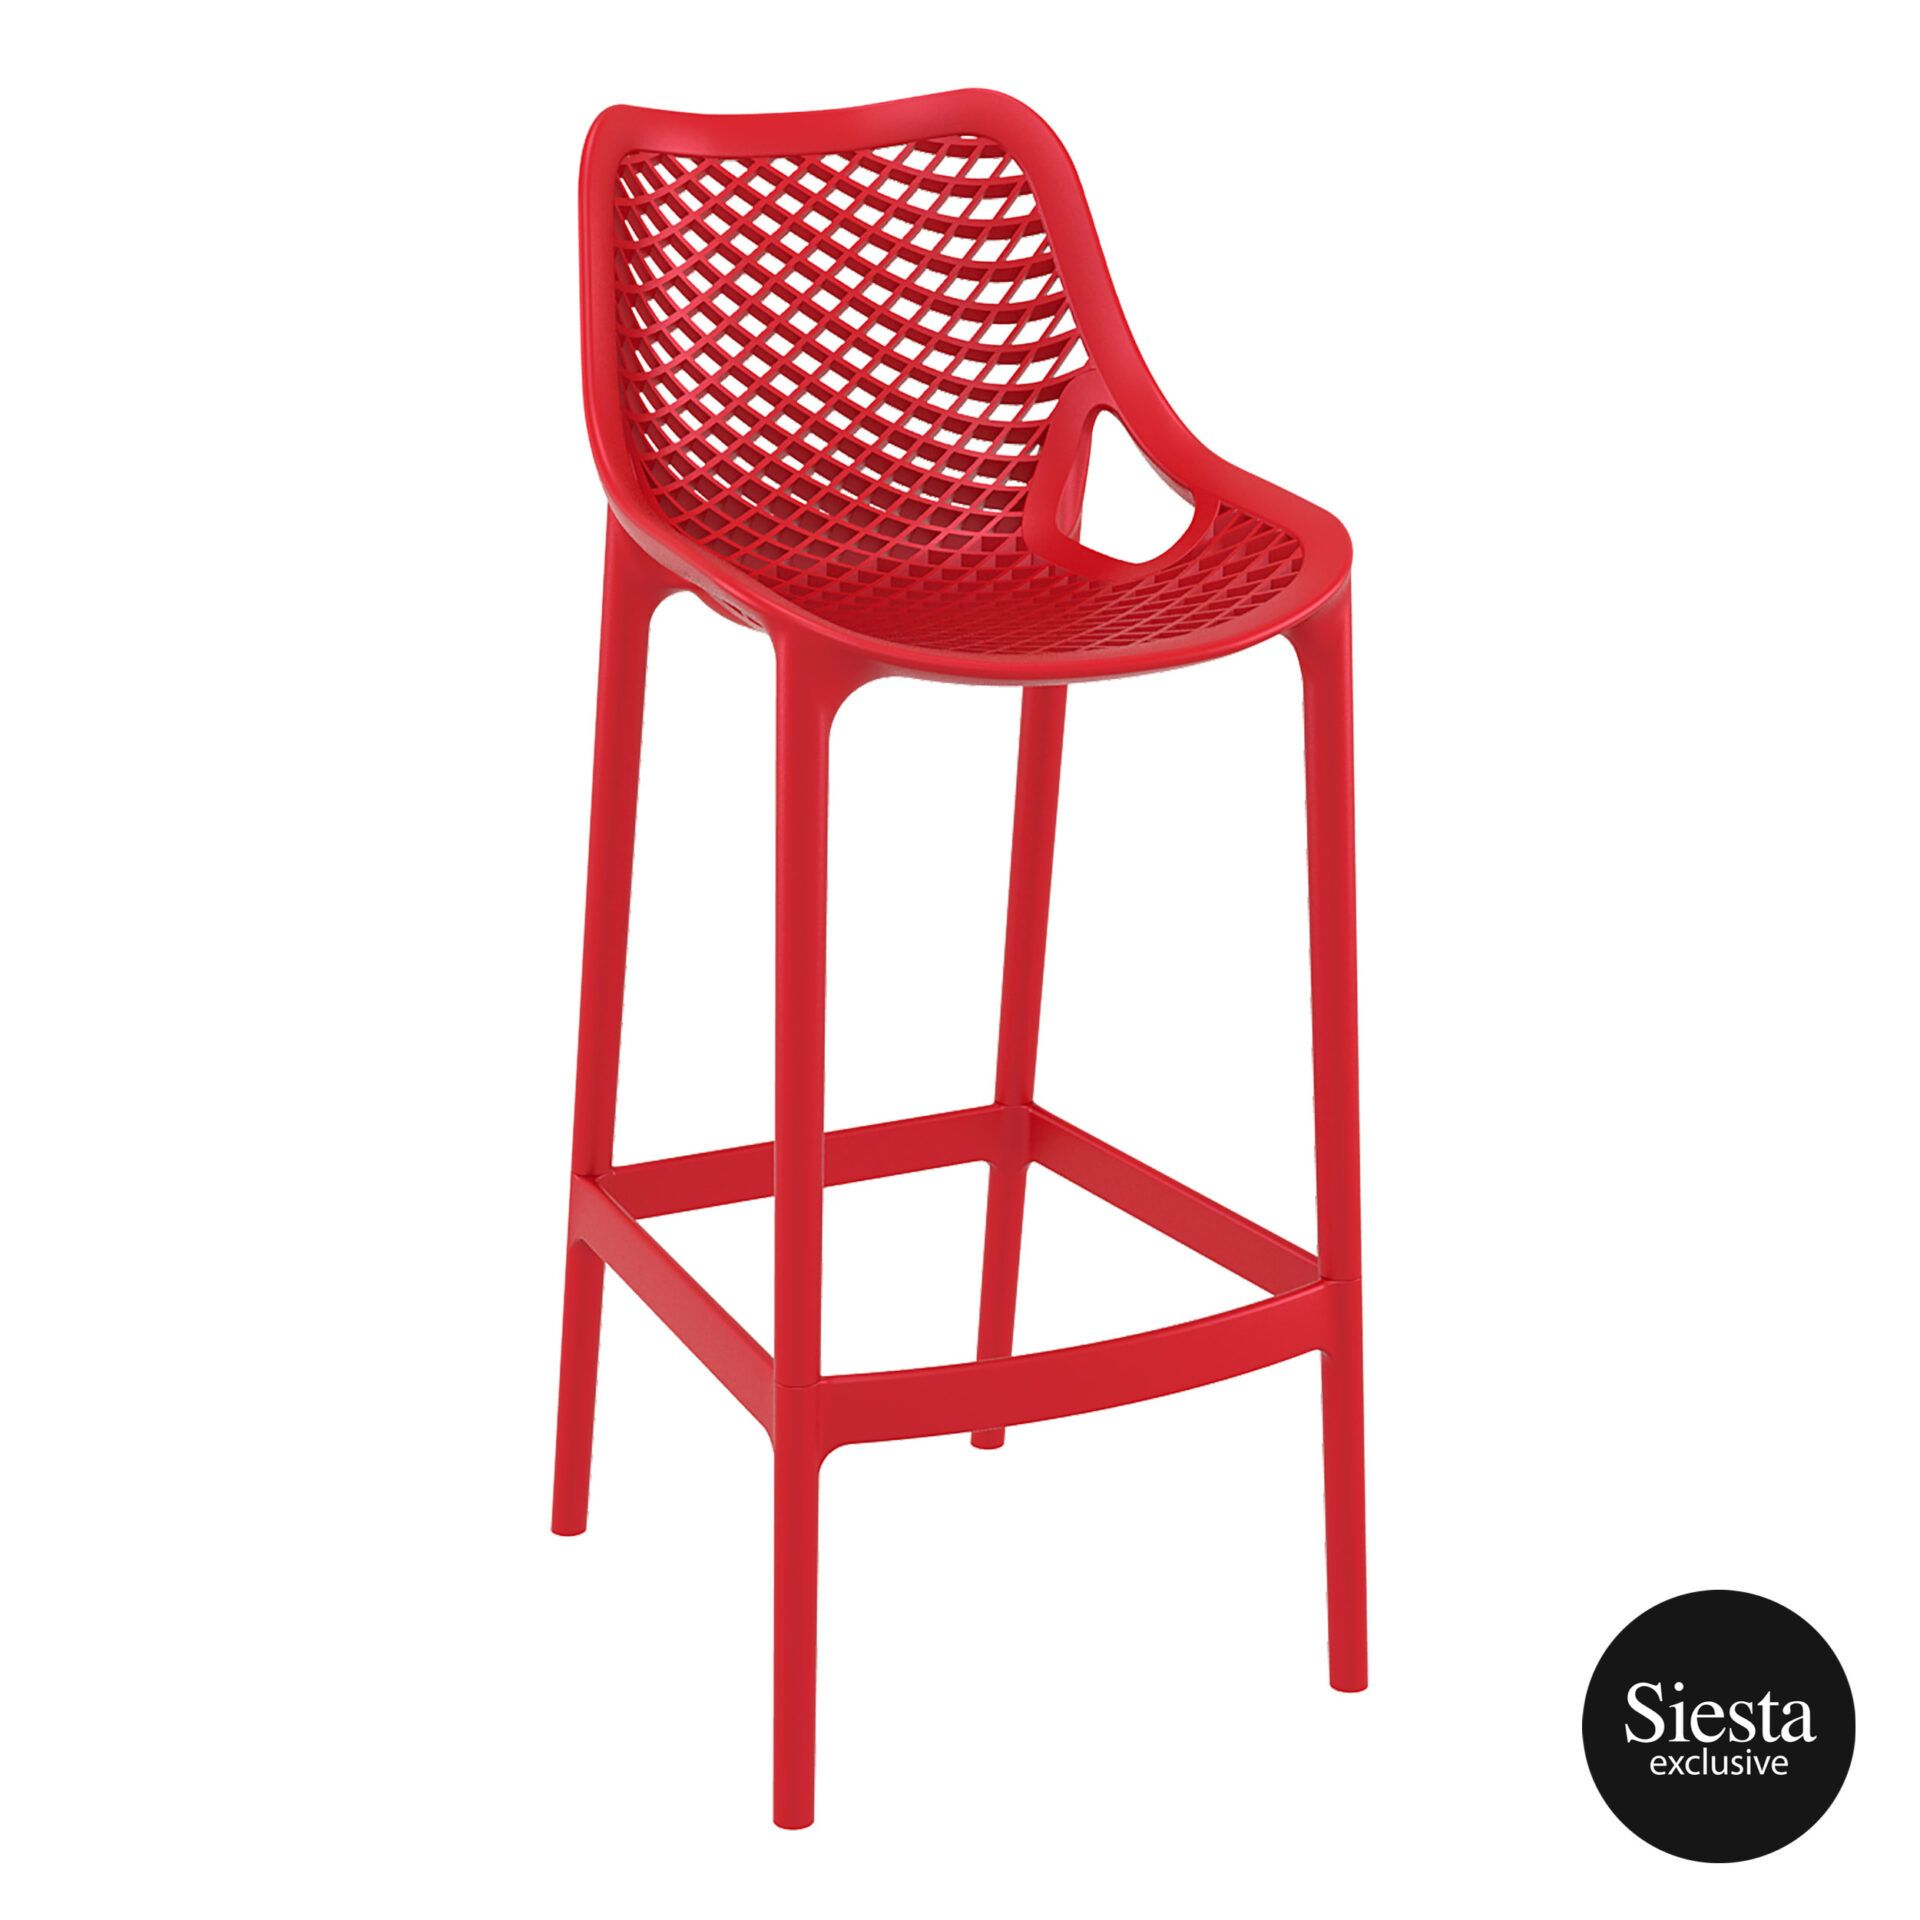 original siesta air barstool 75 red front side 1